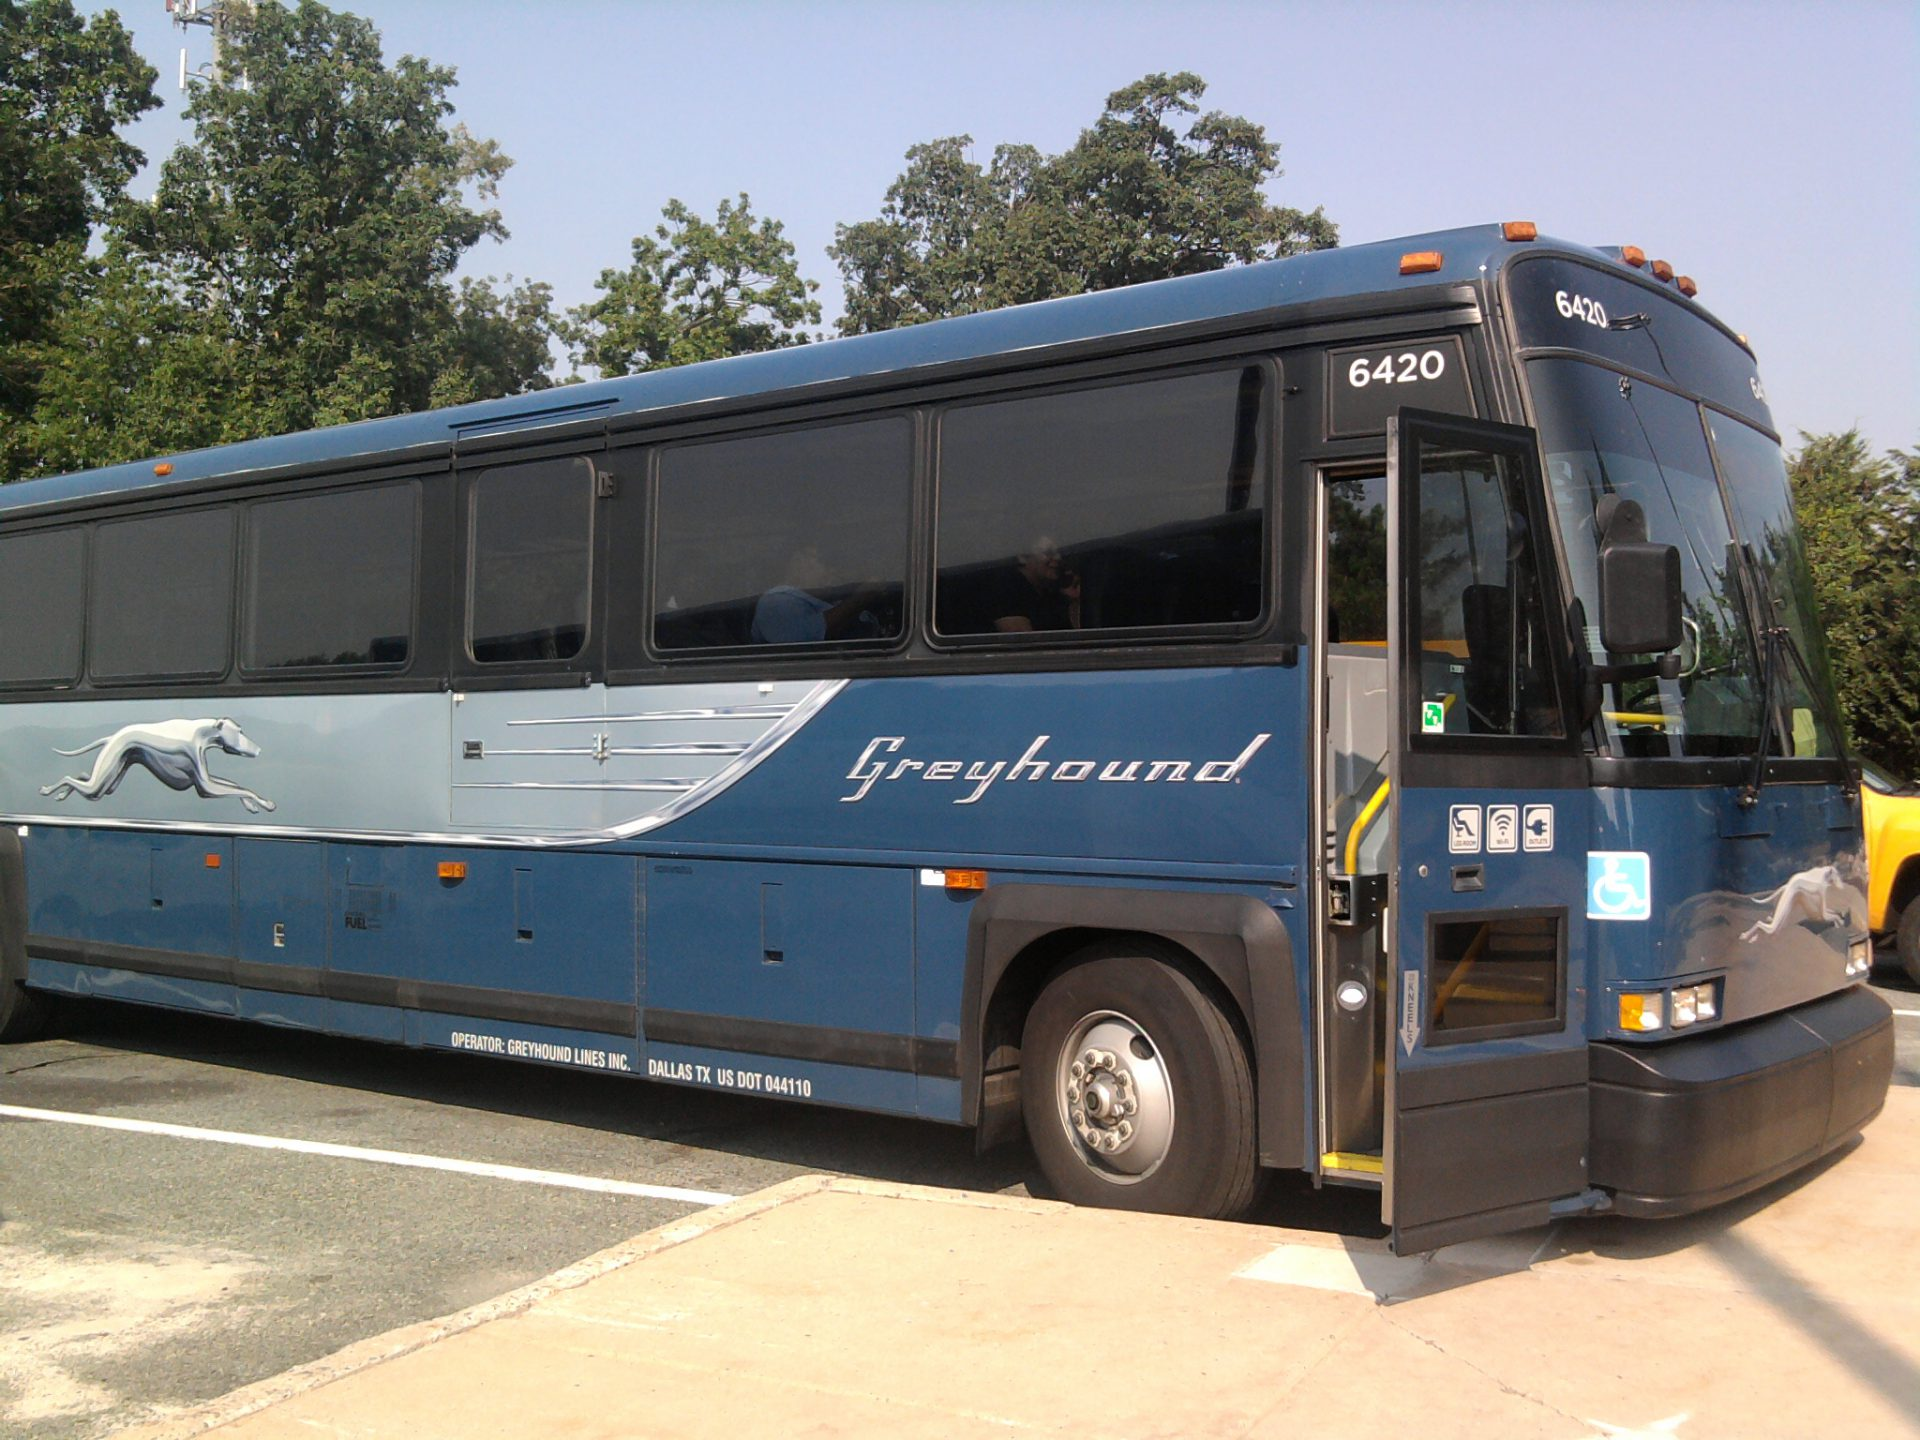 Greyhound Lines, Inc., usually shortened to Greyhound, is an intercity bus common carrier serving over 3, destinations across North America. The company's first route began in Hibbing, Minnesota in , and the company adopted the Greyhound name in Since October , Greyhound has been a subsidiary of British transportation company FirstGroup, but continues to be based in Dallas.